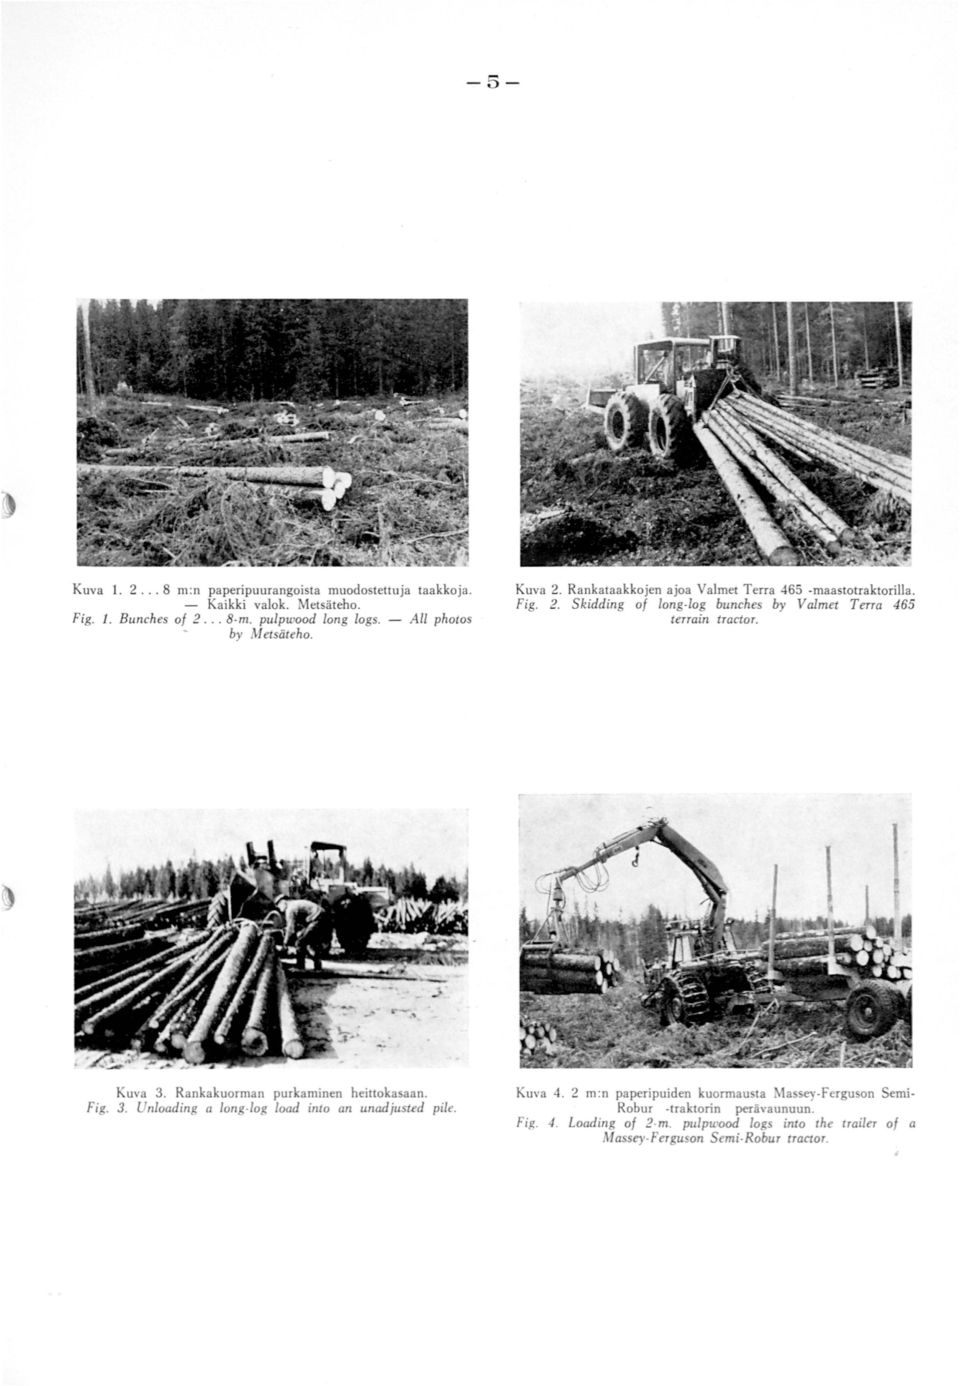 Kuva 3. Rankakuorman purkaminen heittokasaan. Fig. 3. Unloading a long-log load inlo an unadjusted pile. Kuva 4.